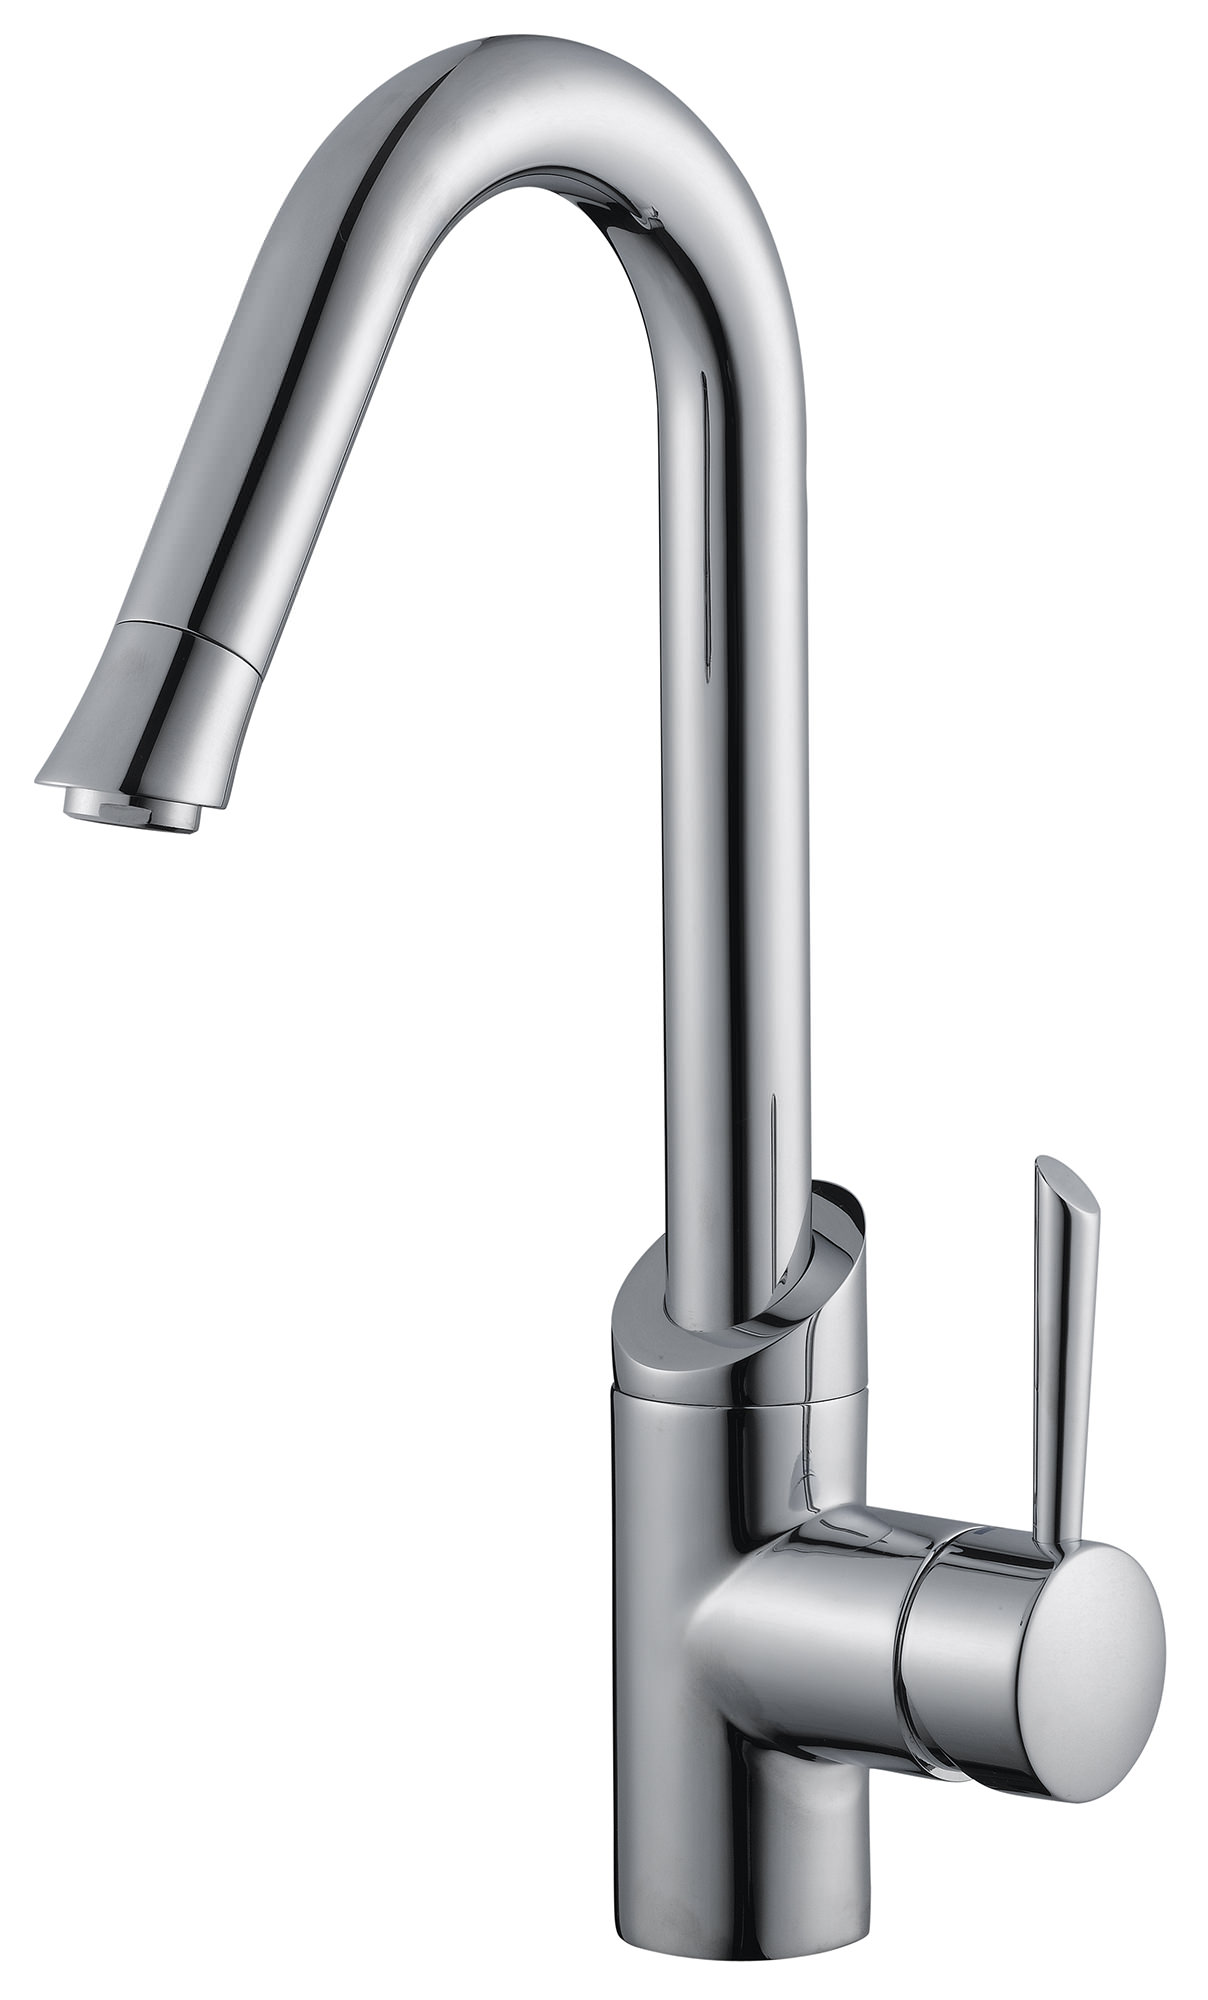 What Is A Deck Mounted Kitchen Tap